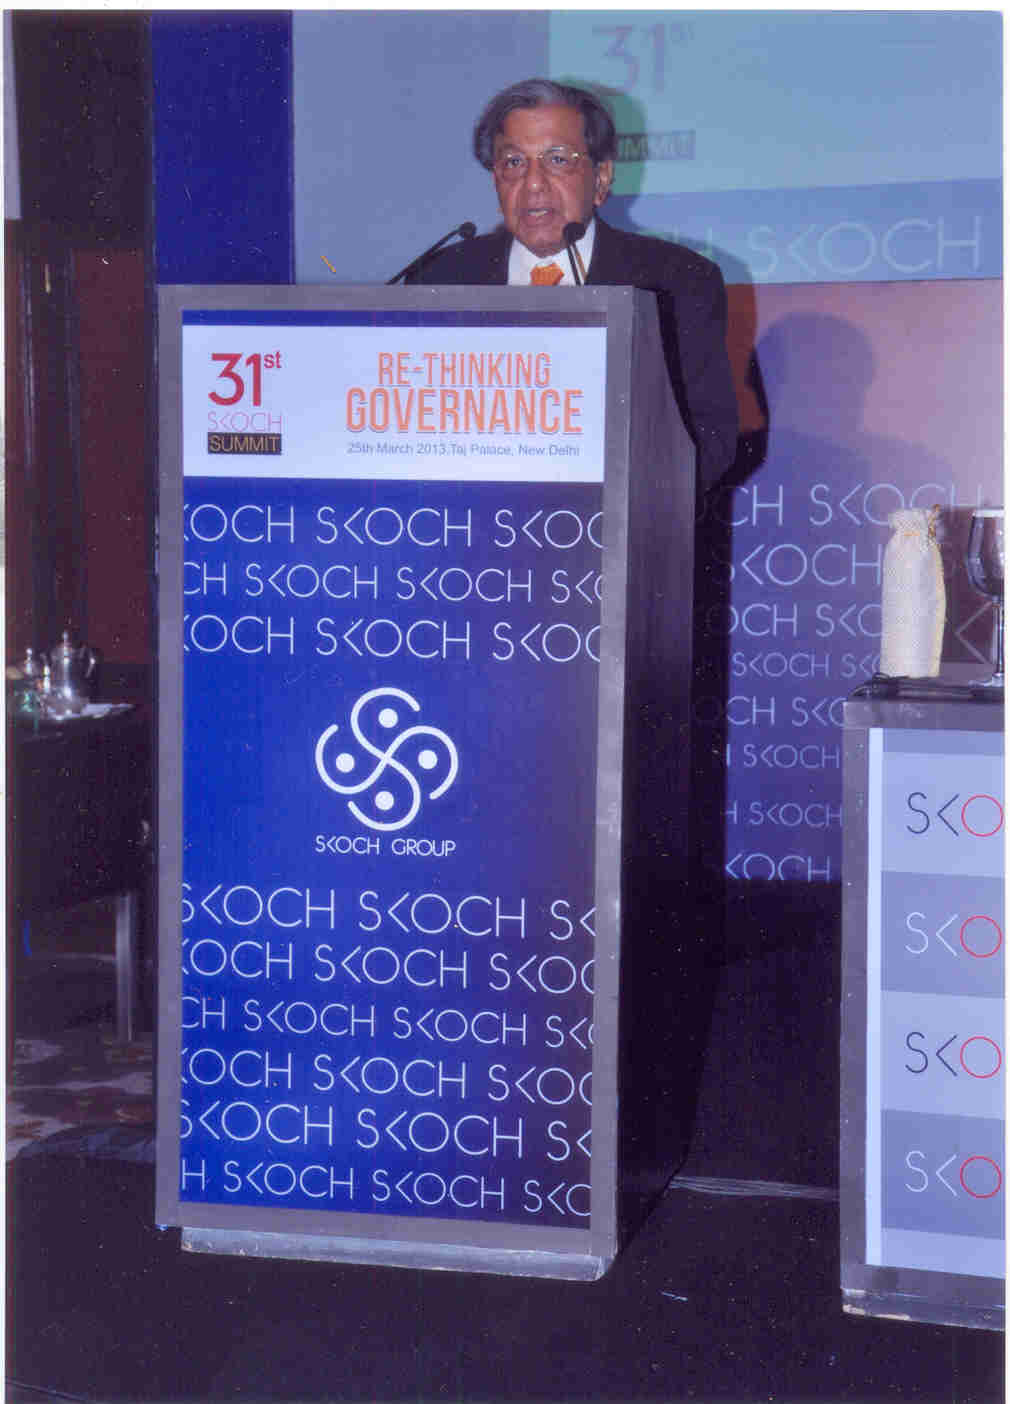 31st Skoch Summit on Rethinking Governance